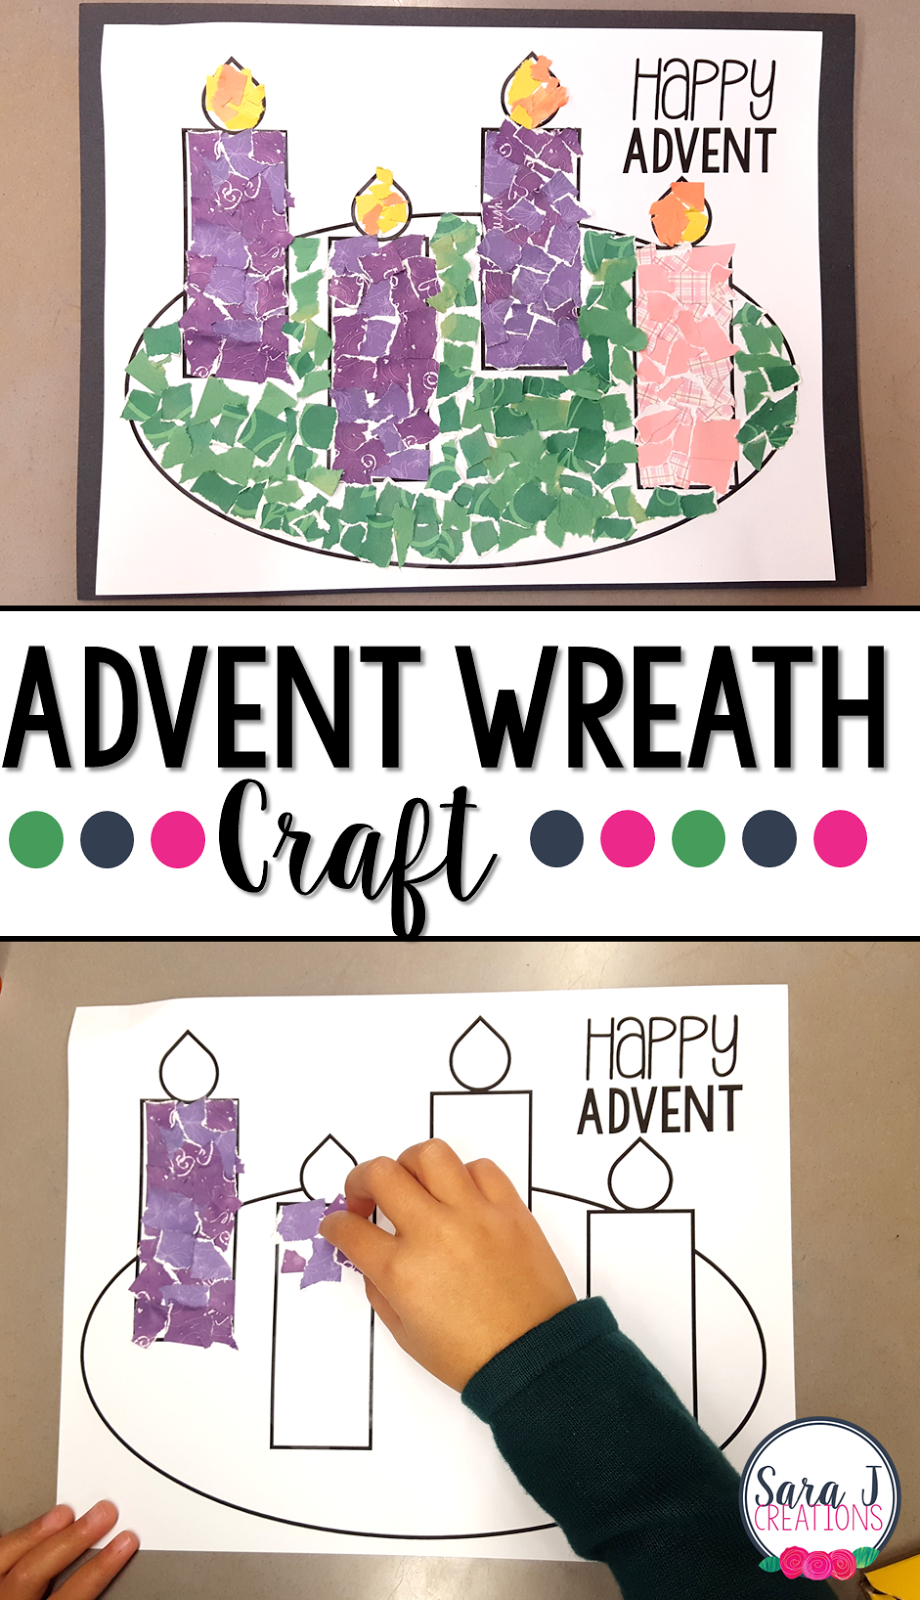 medium resolution of 100+ Simple Catholic Advent Crafts and Activities for Kids